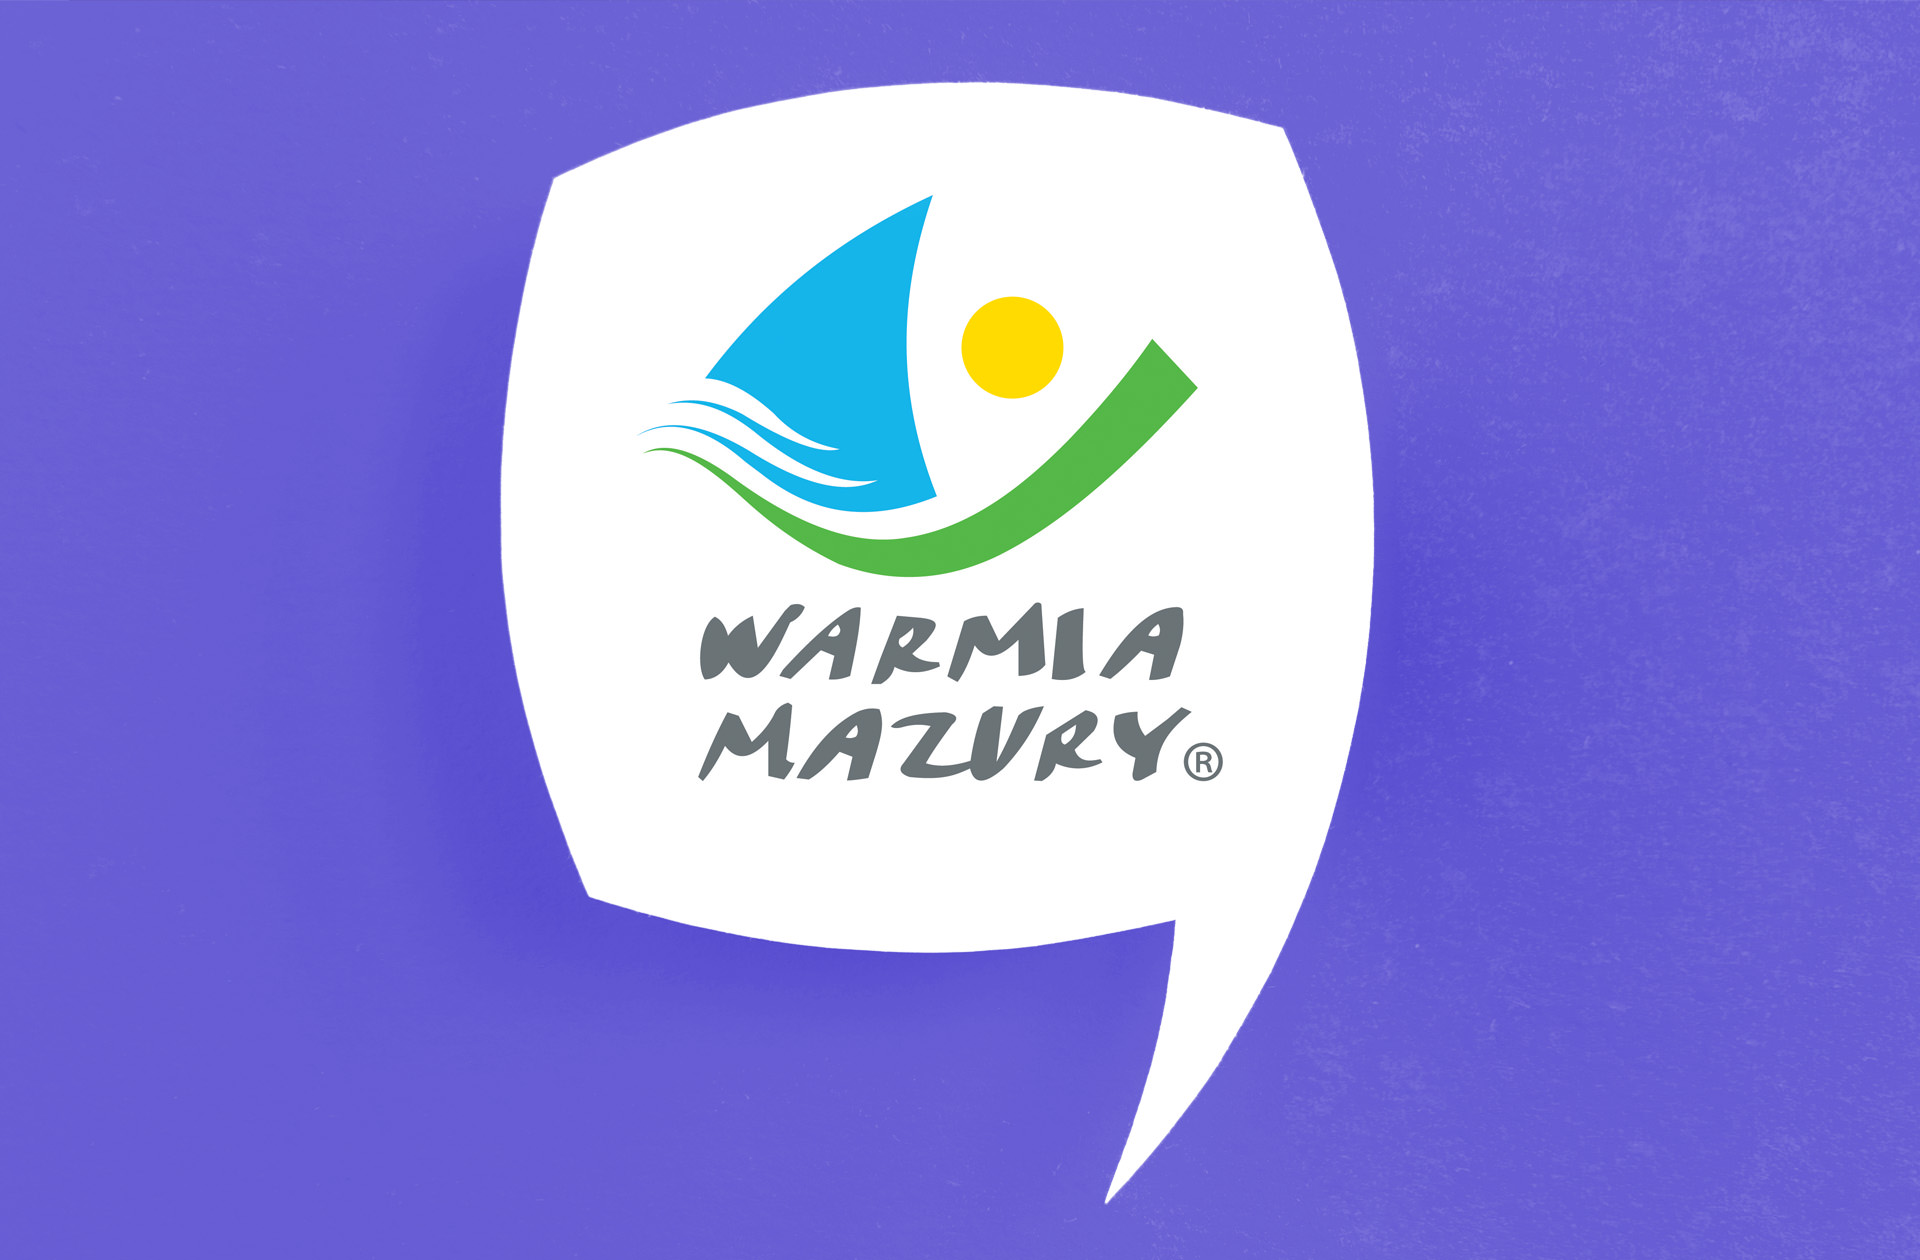 WARMIA AND MASURIA